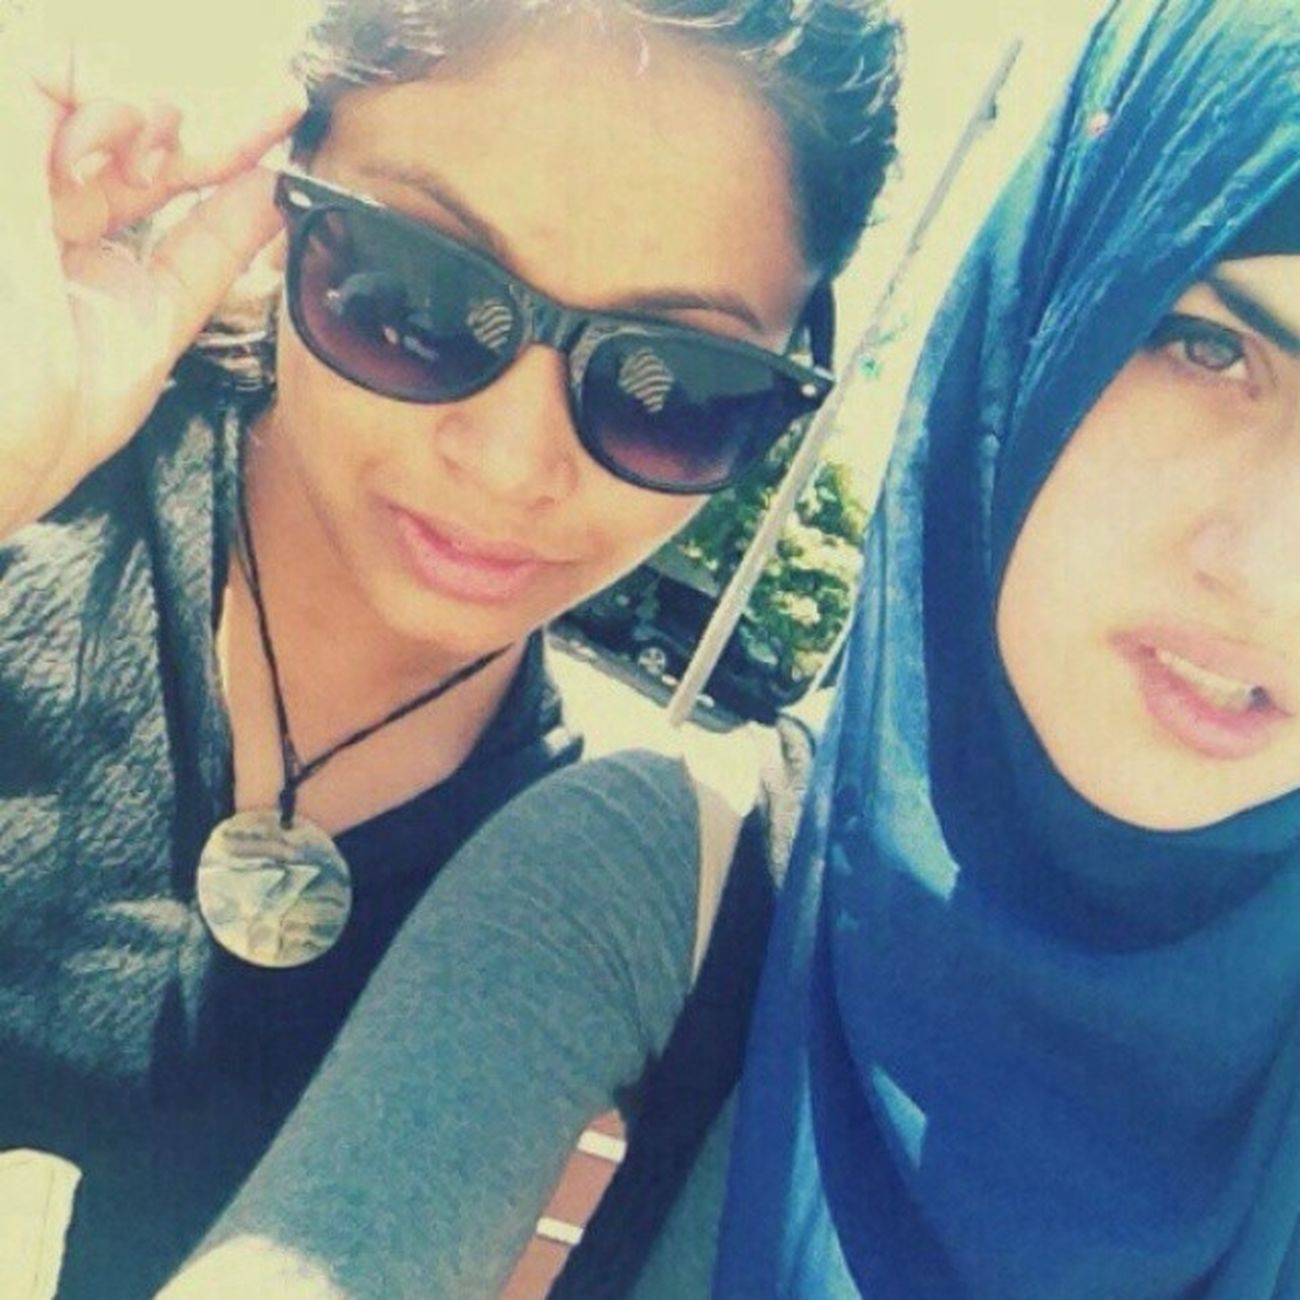 Coz I love her so much!BoredMuchBestfriend Shesbeautiful ArabBeauty Summertime WhiteChocolateCaramelChocolate<3